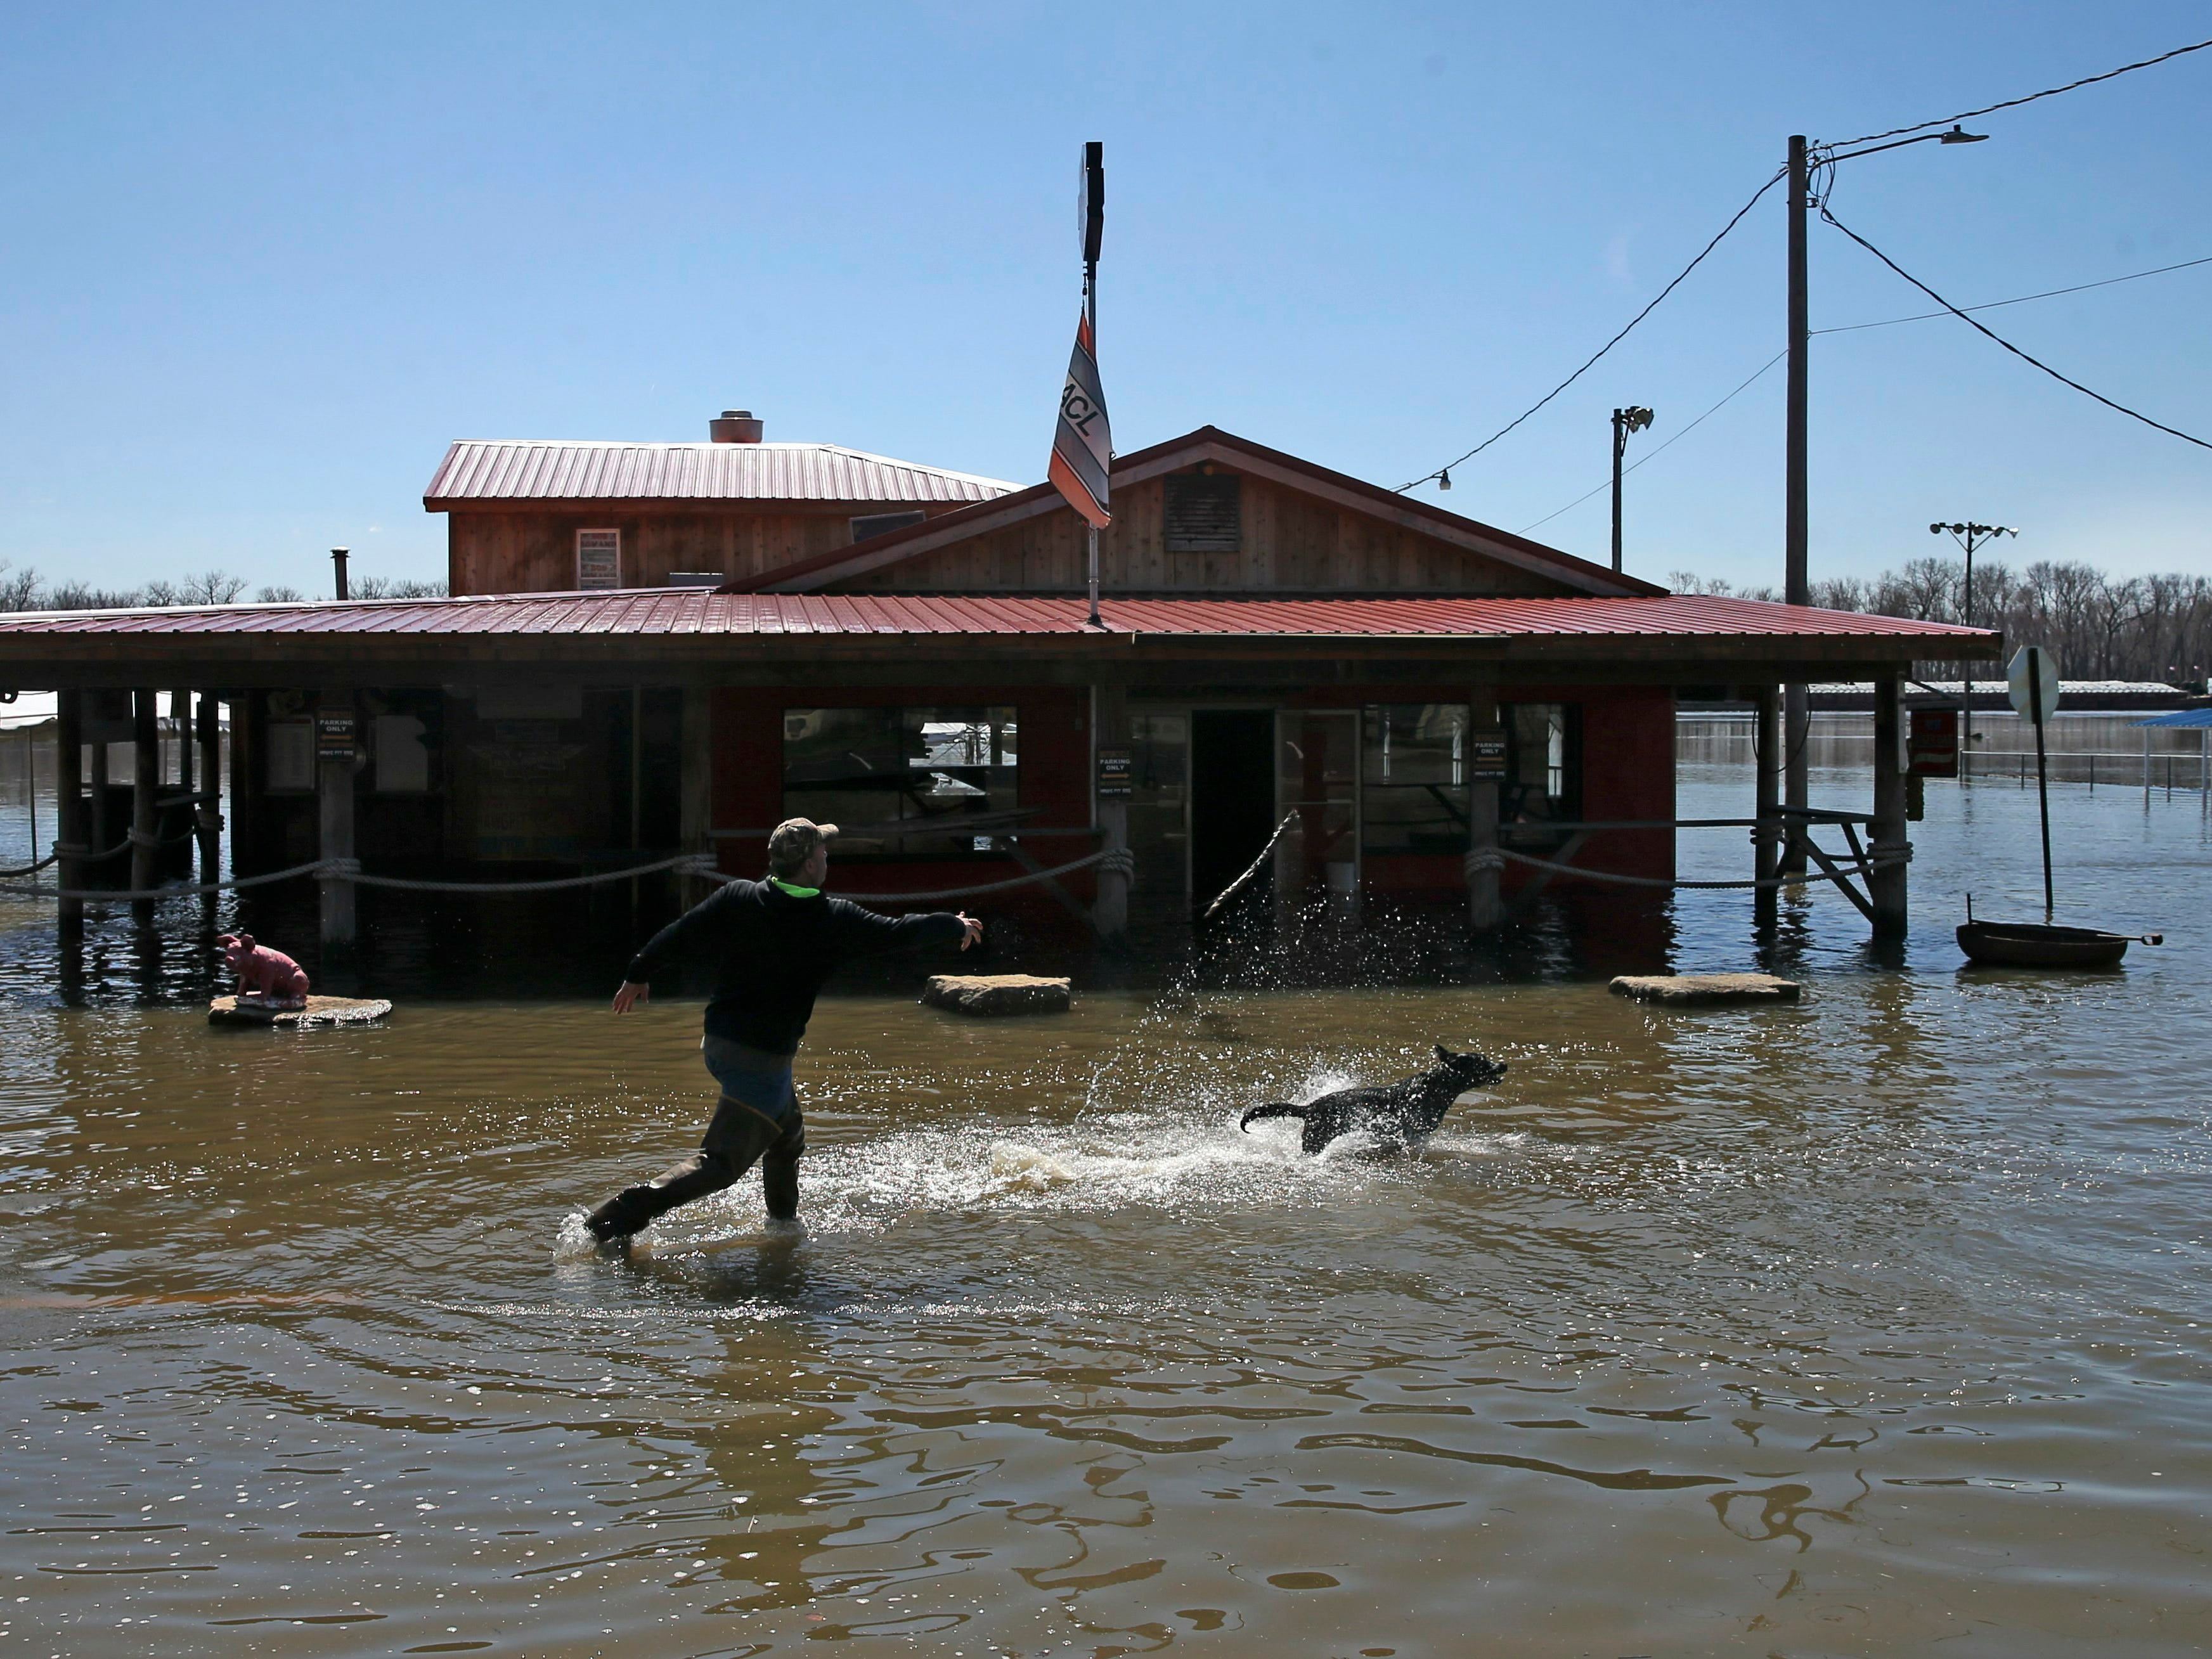 """Cory Wiemelt of Quincy, Ill., the new owner of the Hawg Pit BBQ, passes the day playing fetch with his dog Abbie, while keeping an eye on his bar located along a flooded part of W. Main Street, Tuesday, March, 26, 2019,  in Grafton, Ill. """"We are located at the lowest spot in town. I knew that when I bought the place,"""" said Wiemelt. """"I just have to wait for the water to go down before I can start cleaning up,"""" he said."""